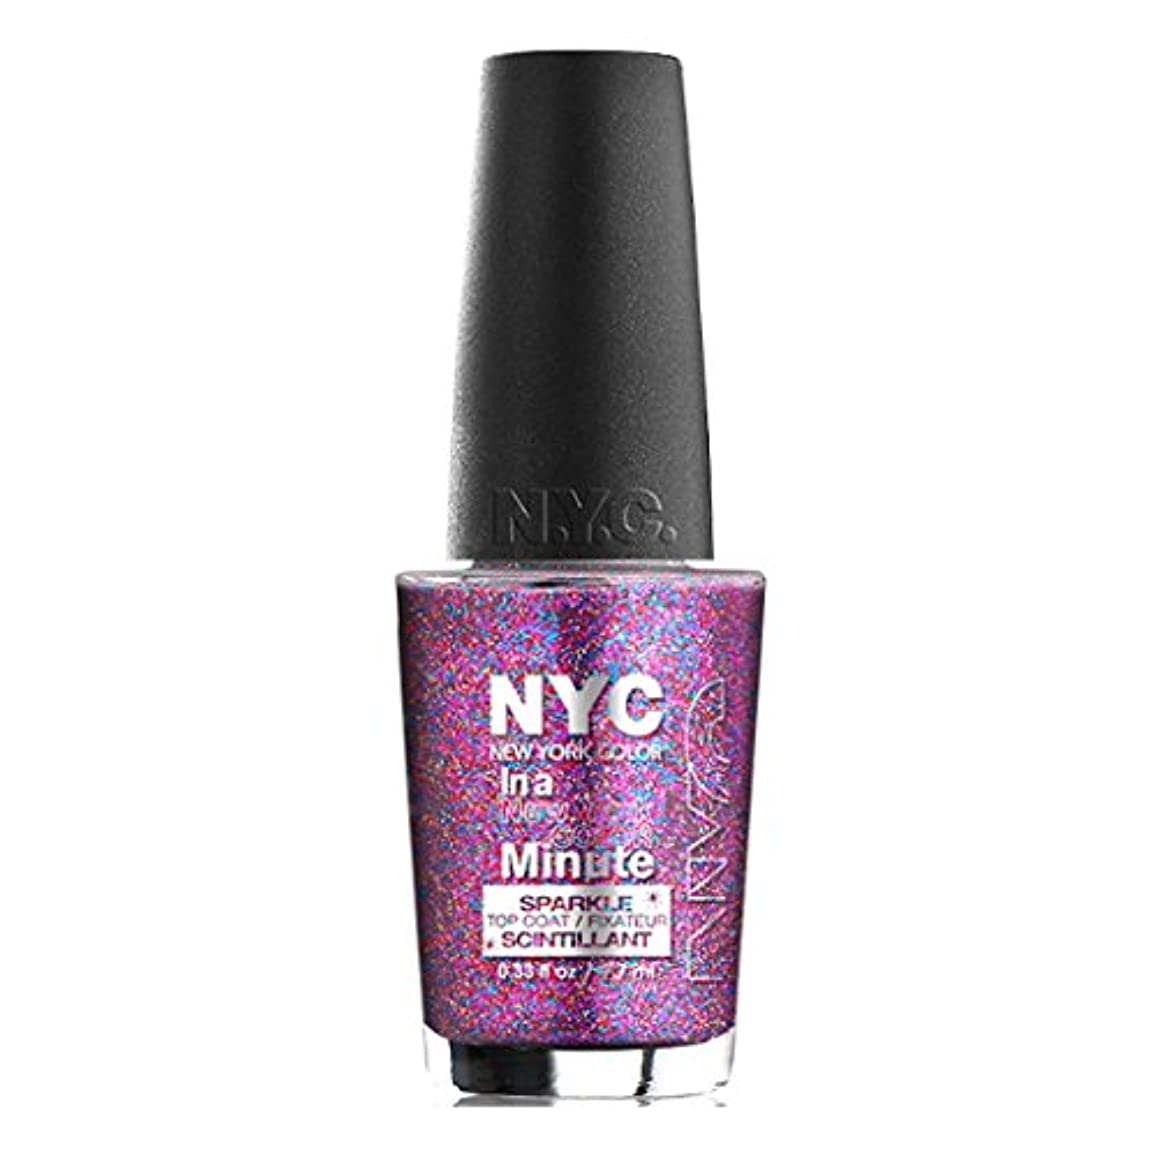 (3 Pack) NYC In A New York Color Minute Sparkle Top Coat - Big City Dazzle (並行輸入品)